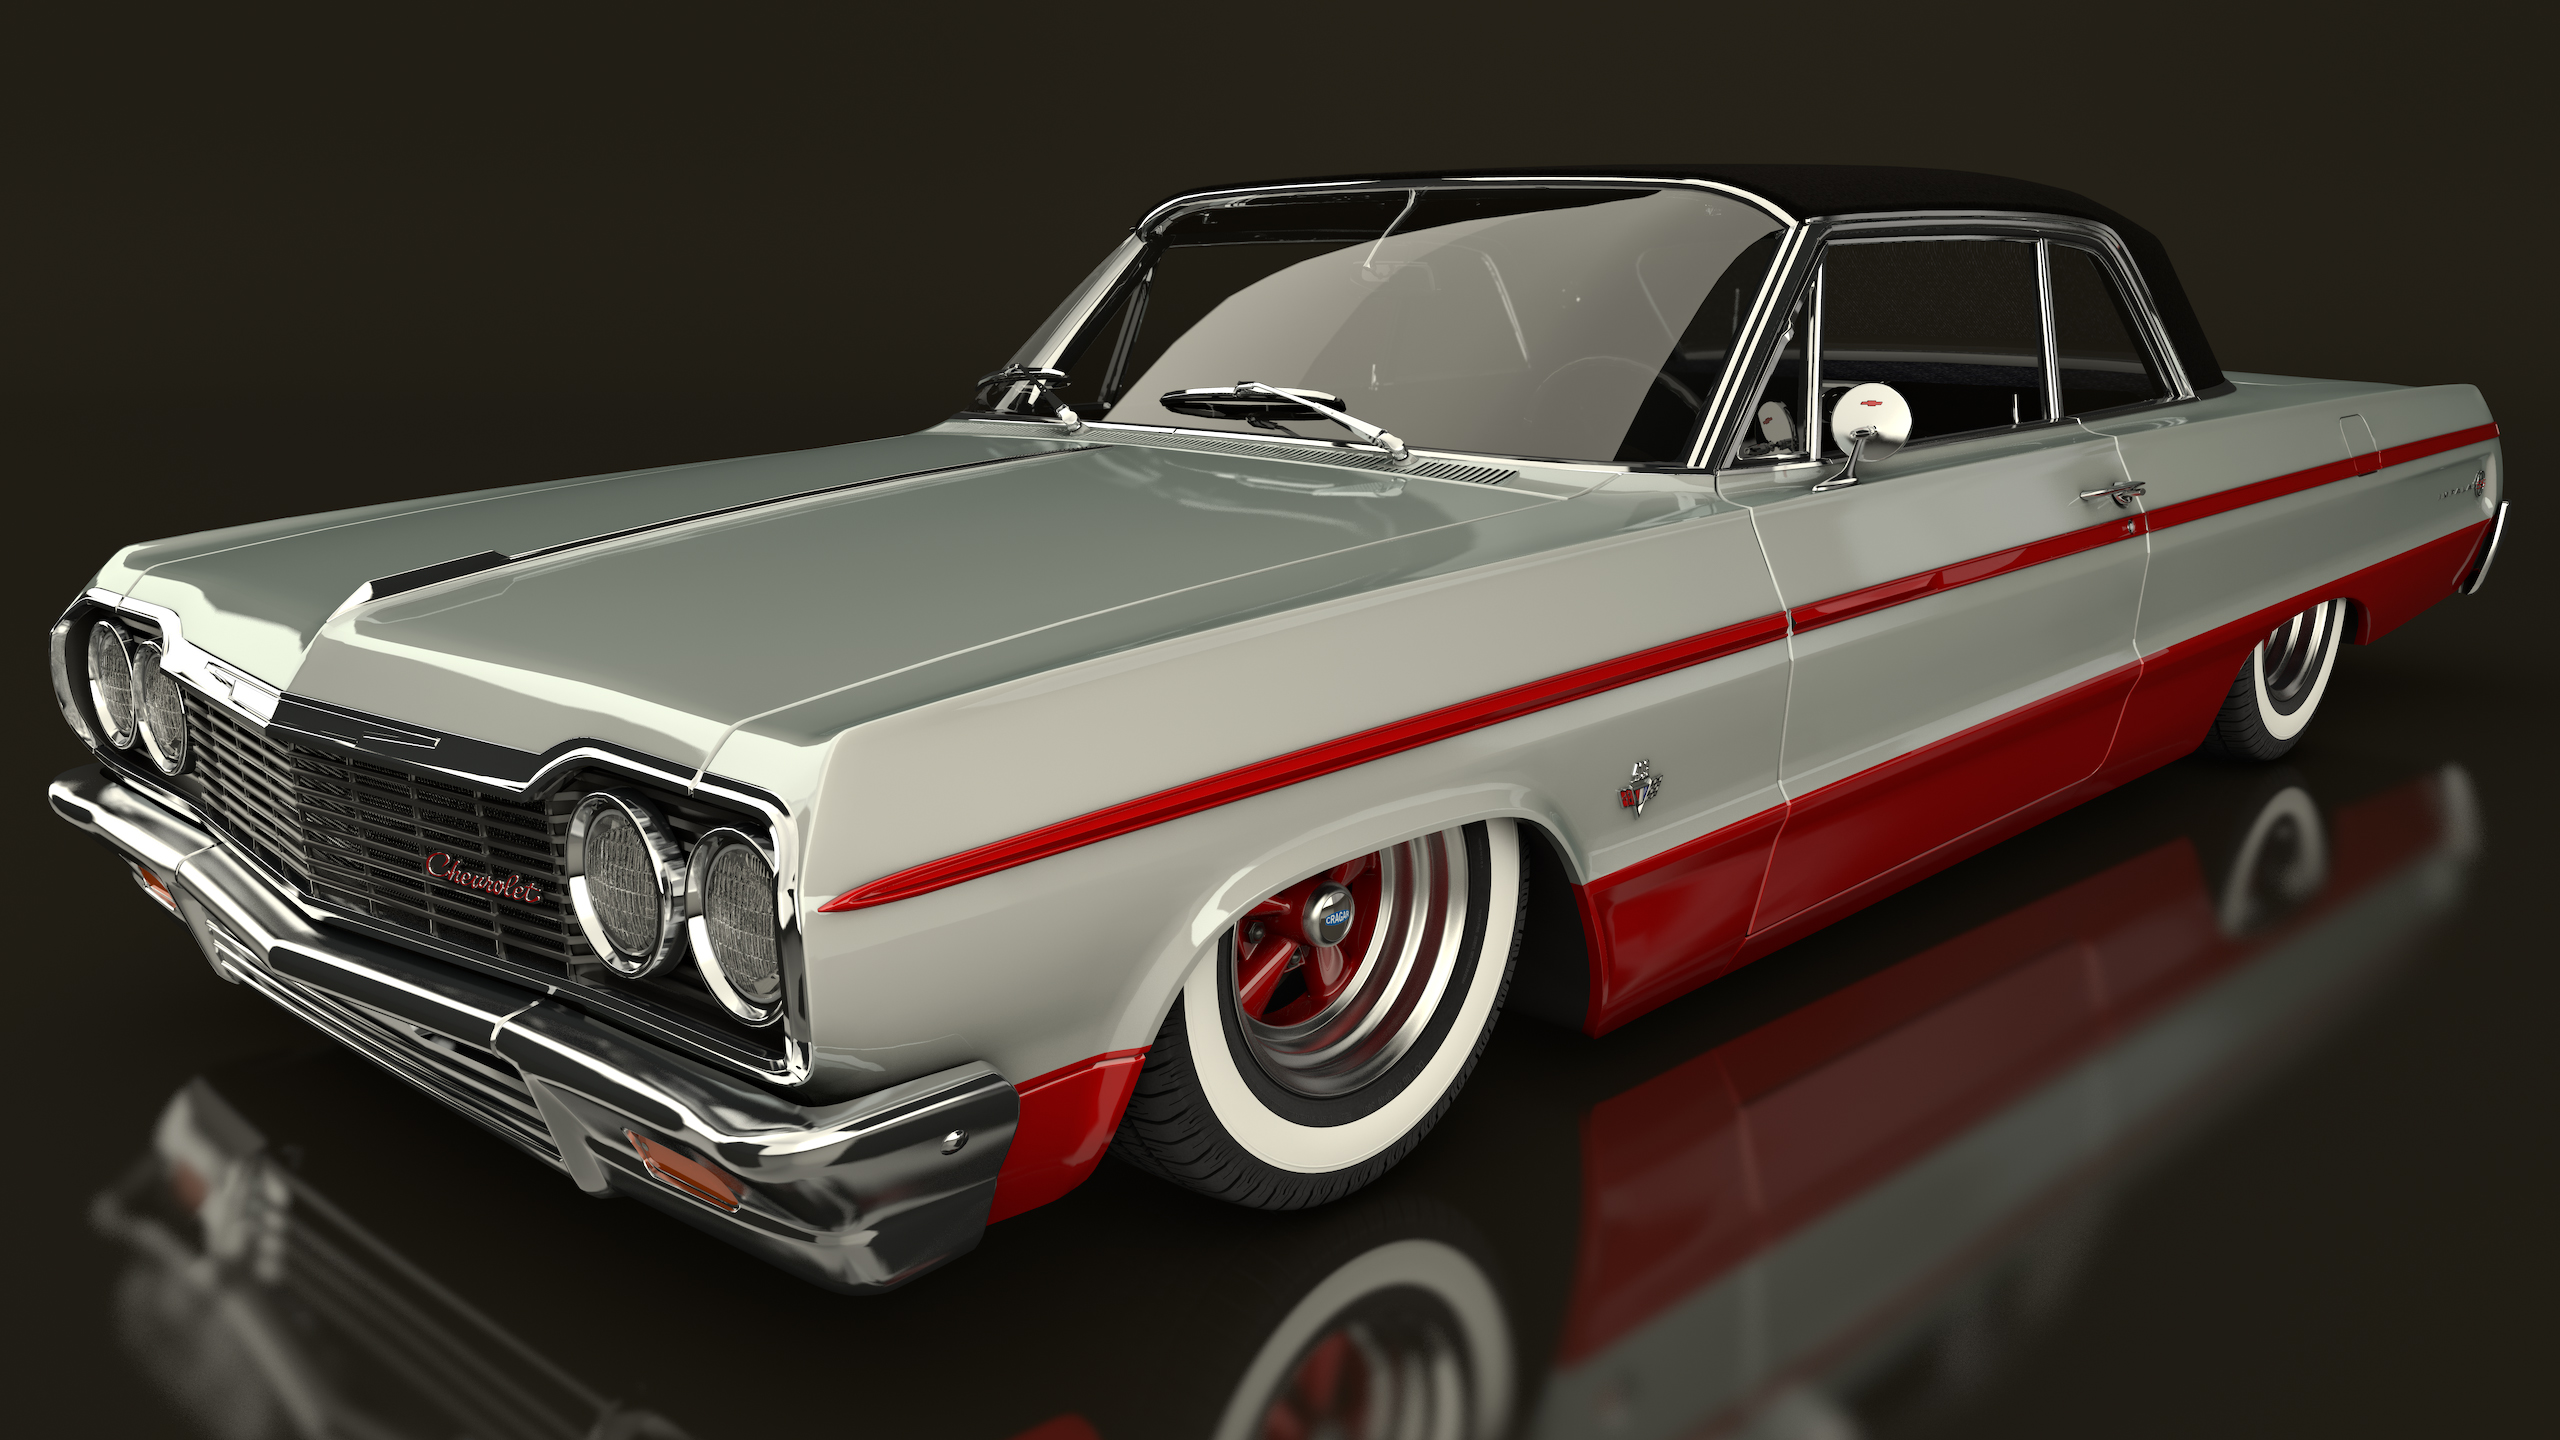 1964 Chevrolet Impala Information And Photos Momentcar